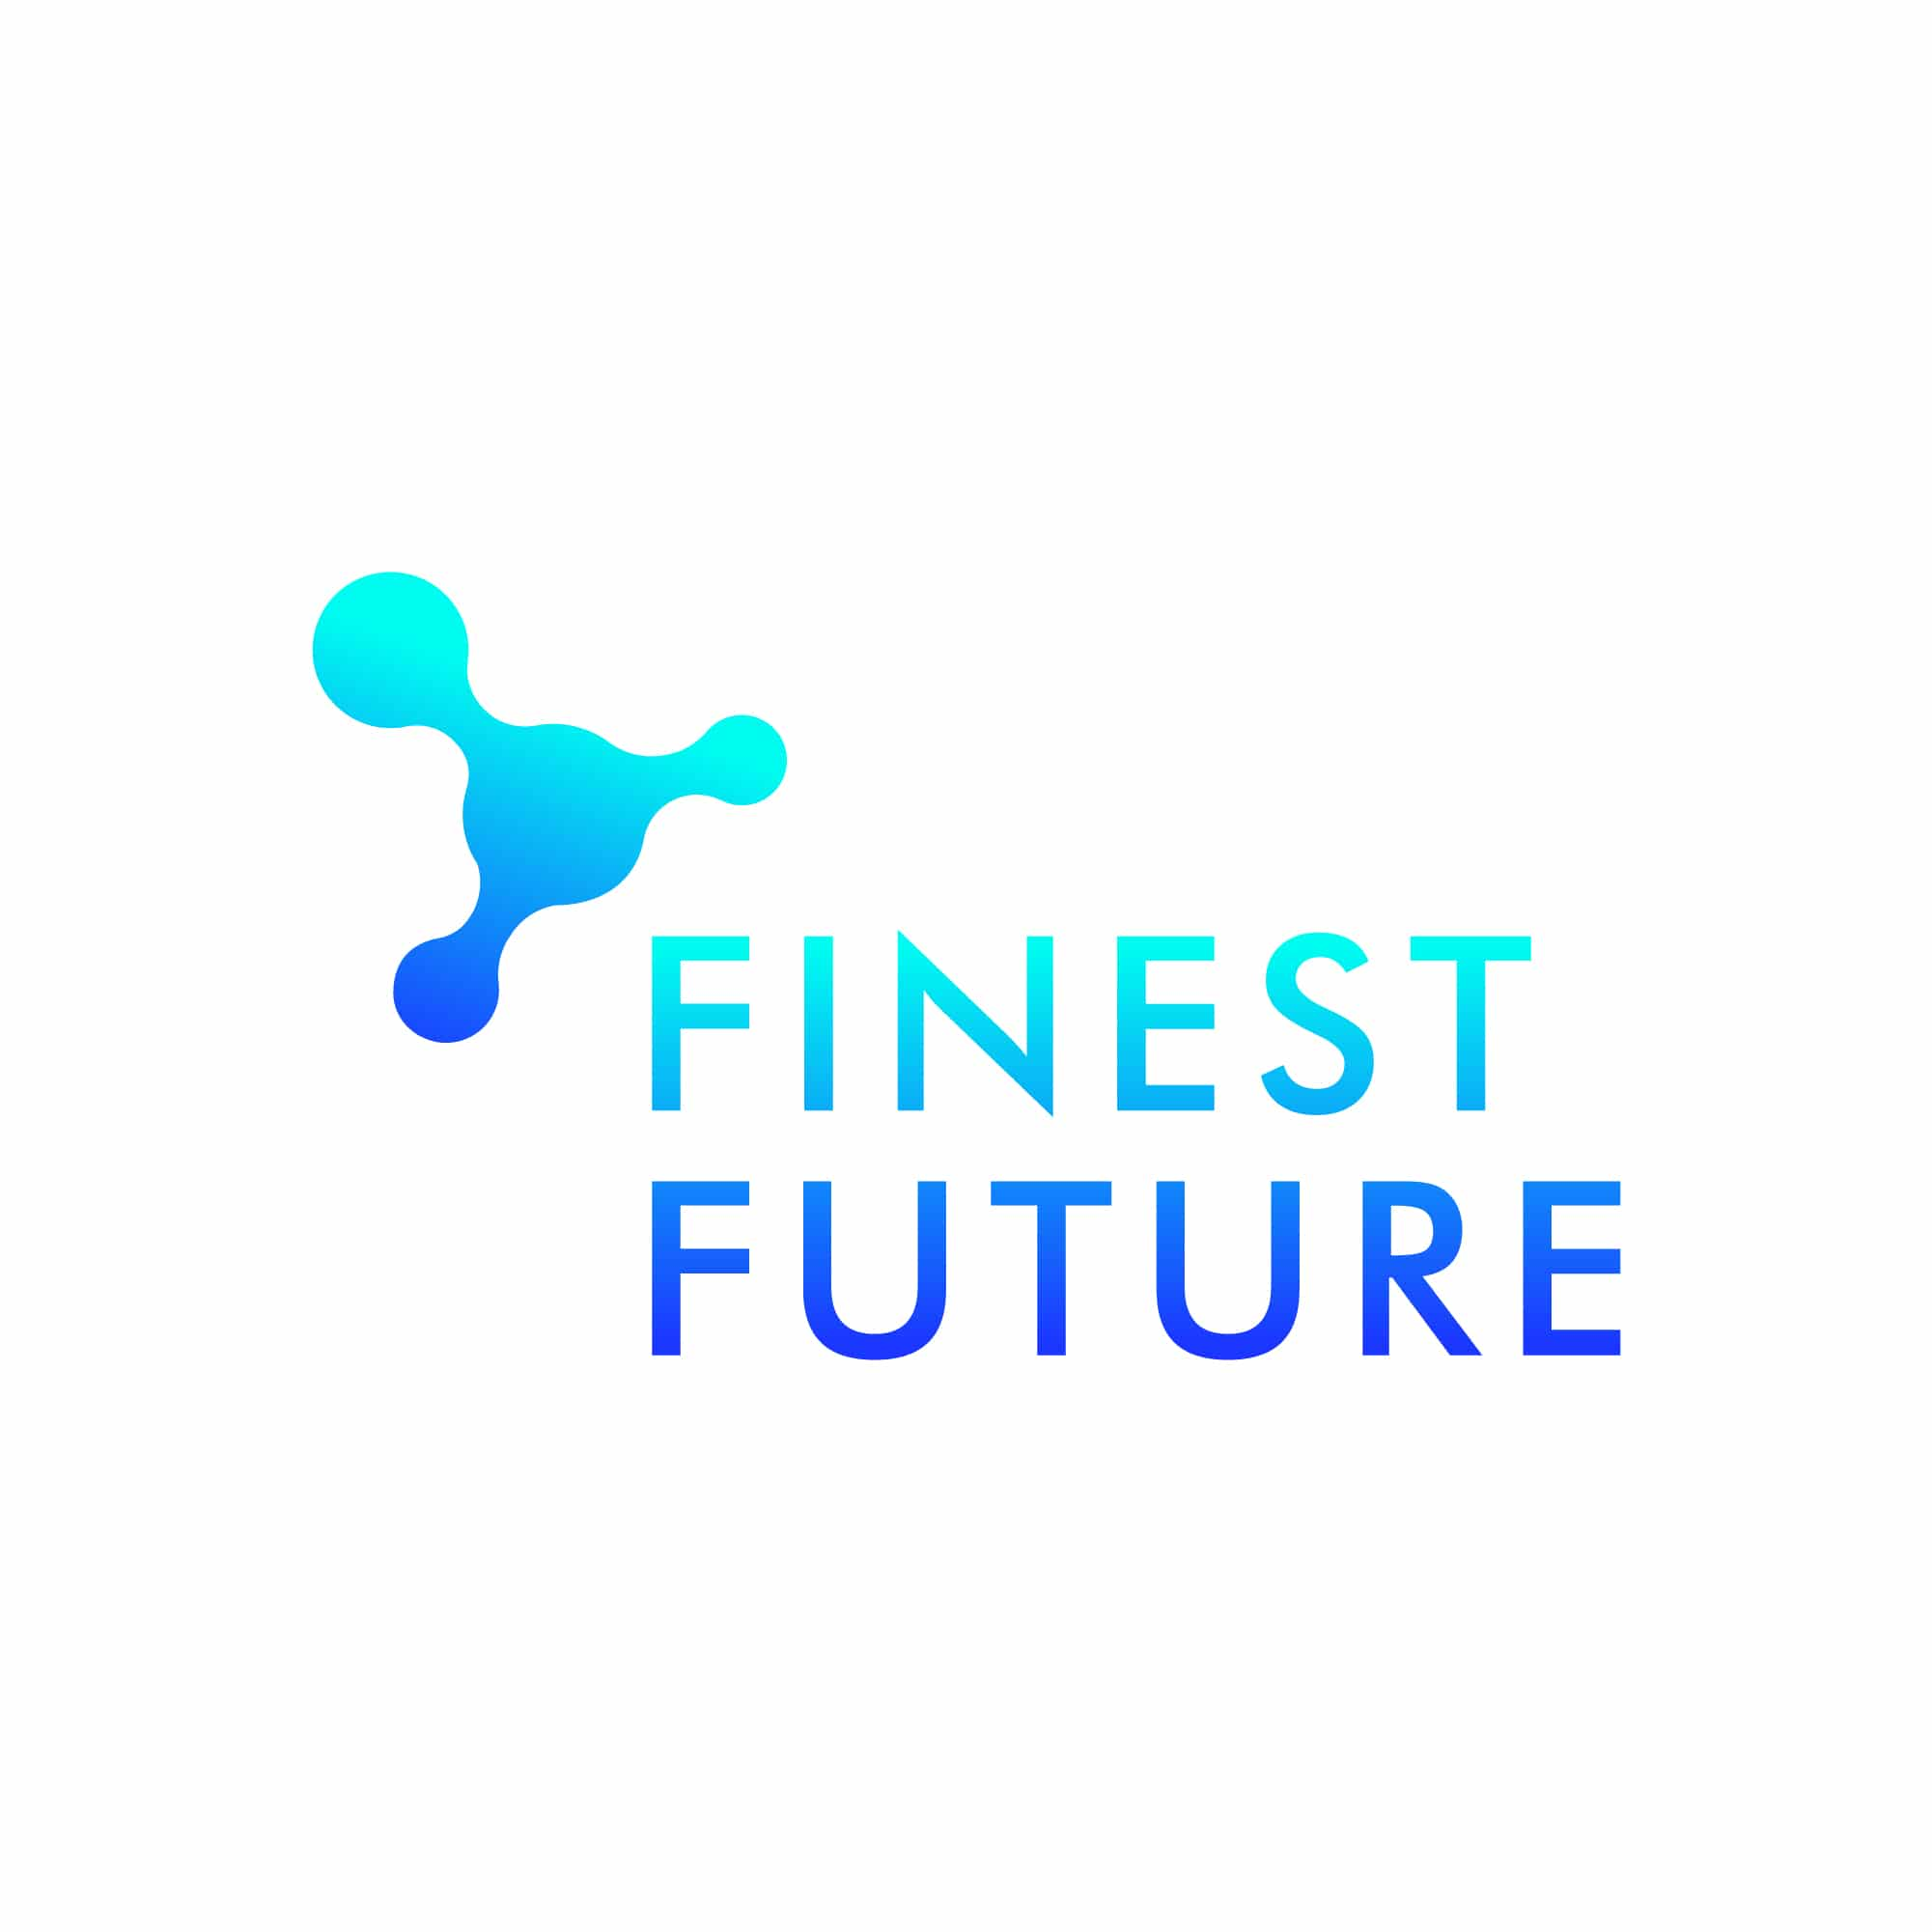 Finest Future is here!